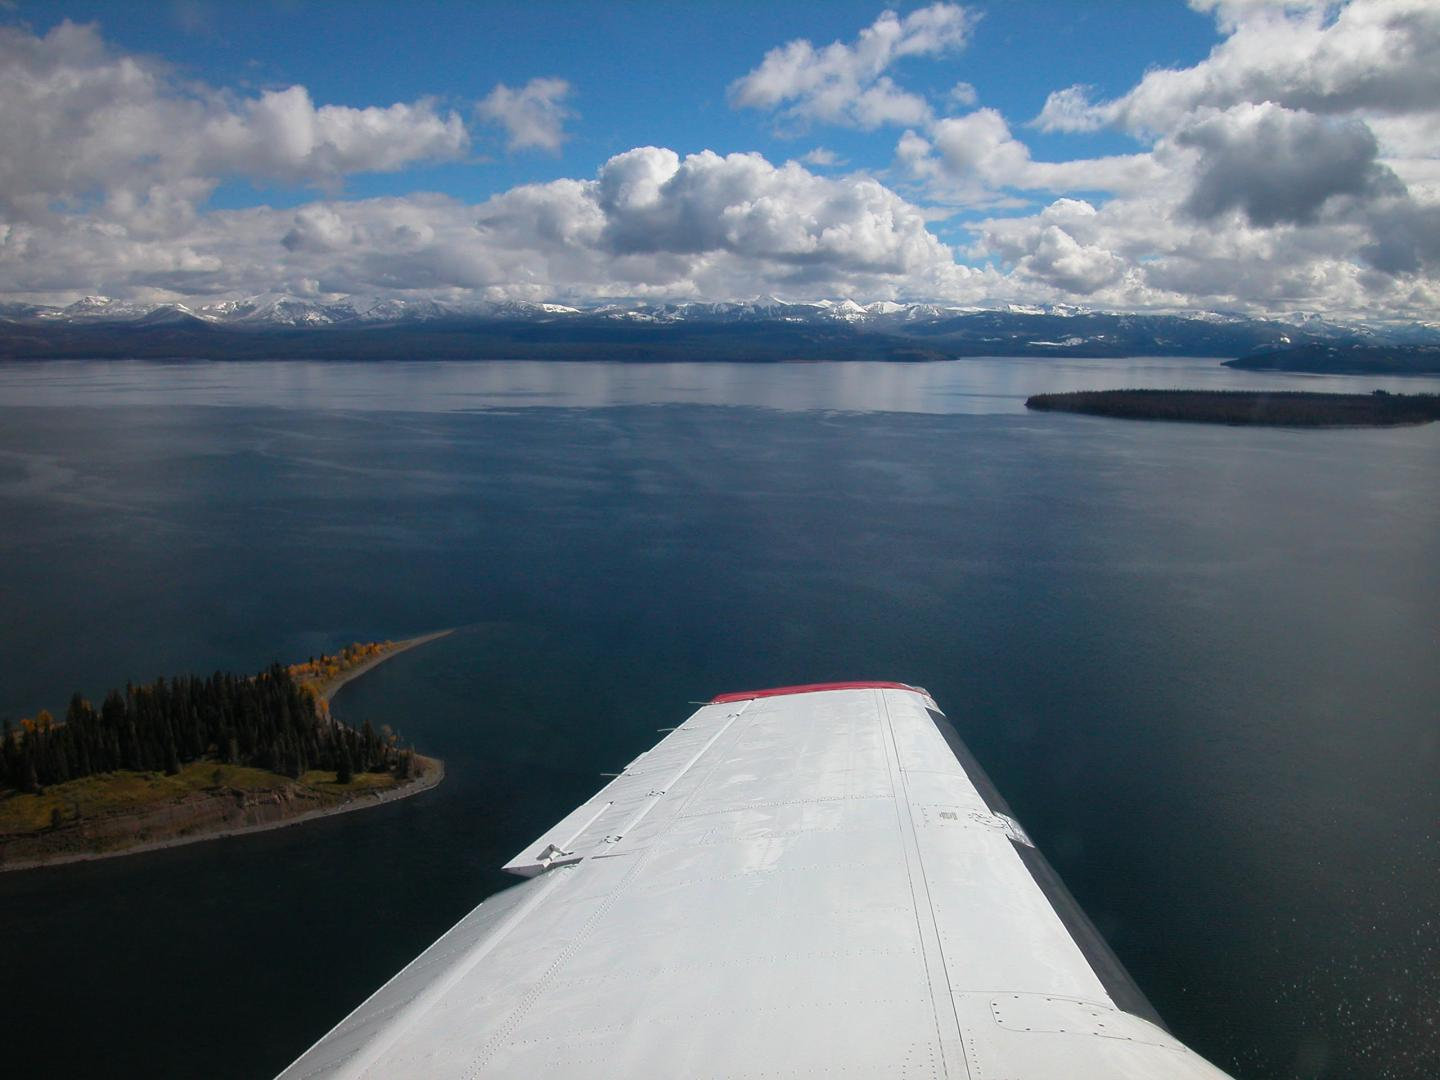 LiDAR Allows National Park Service to Control Lake Trout